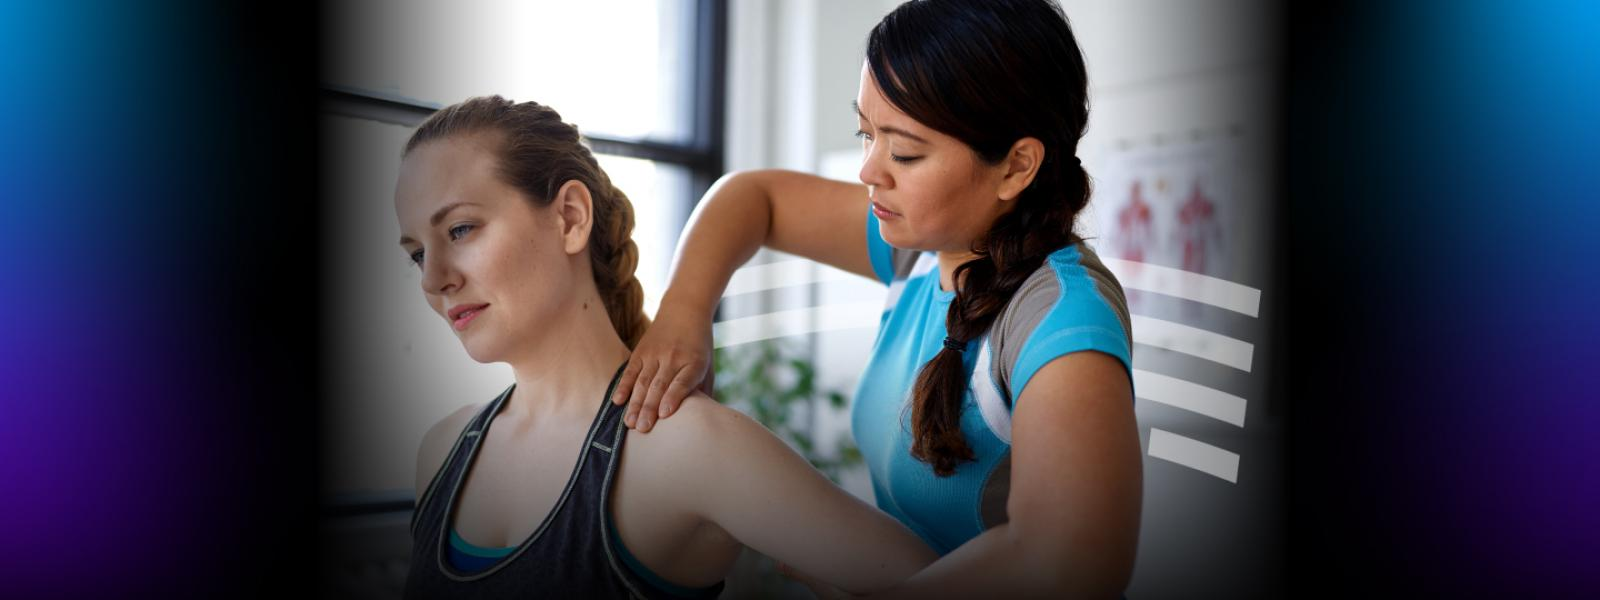 Woman getting therapy for sports injury